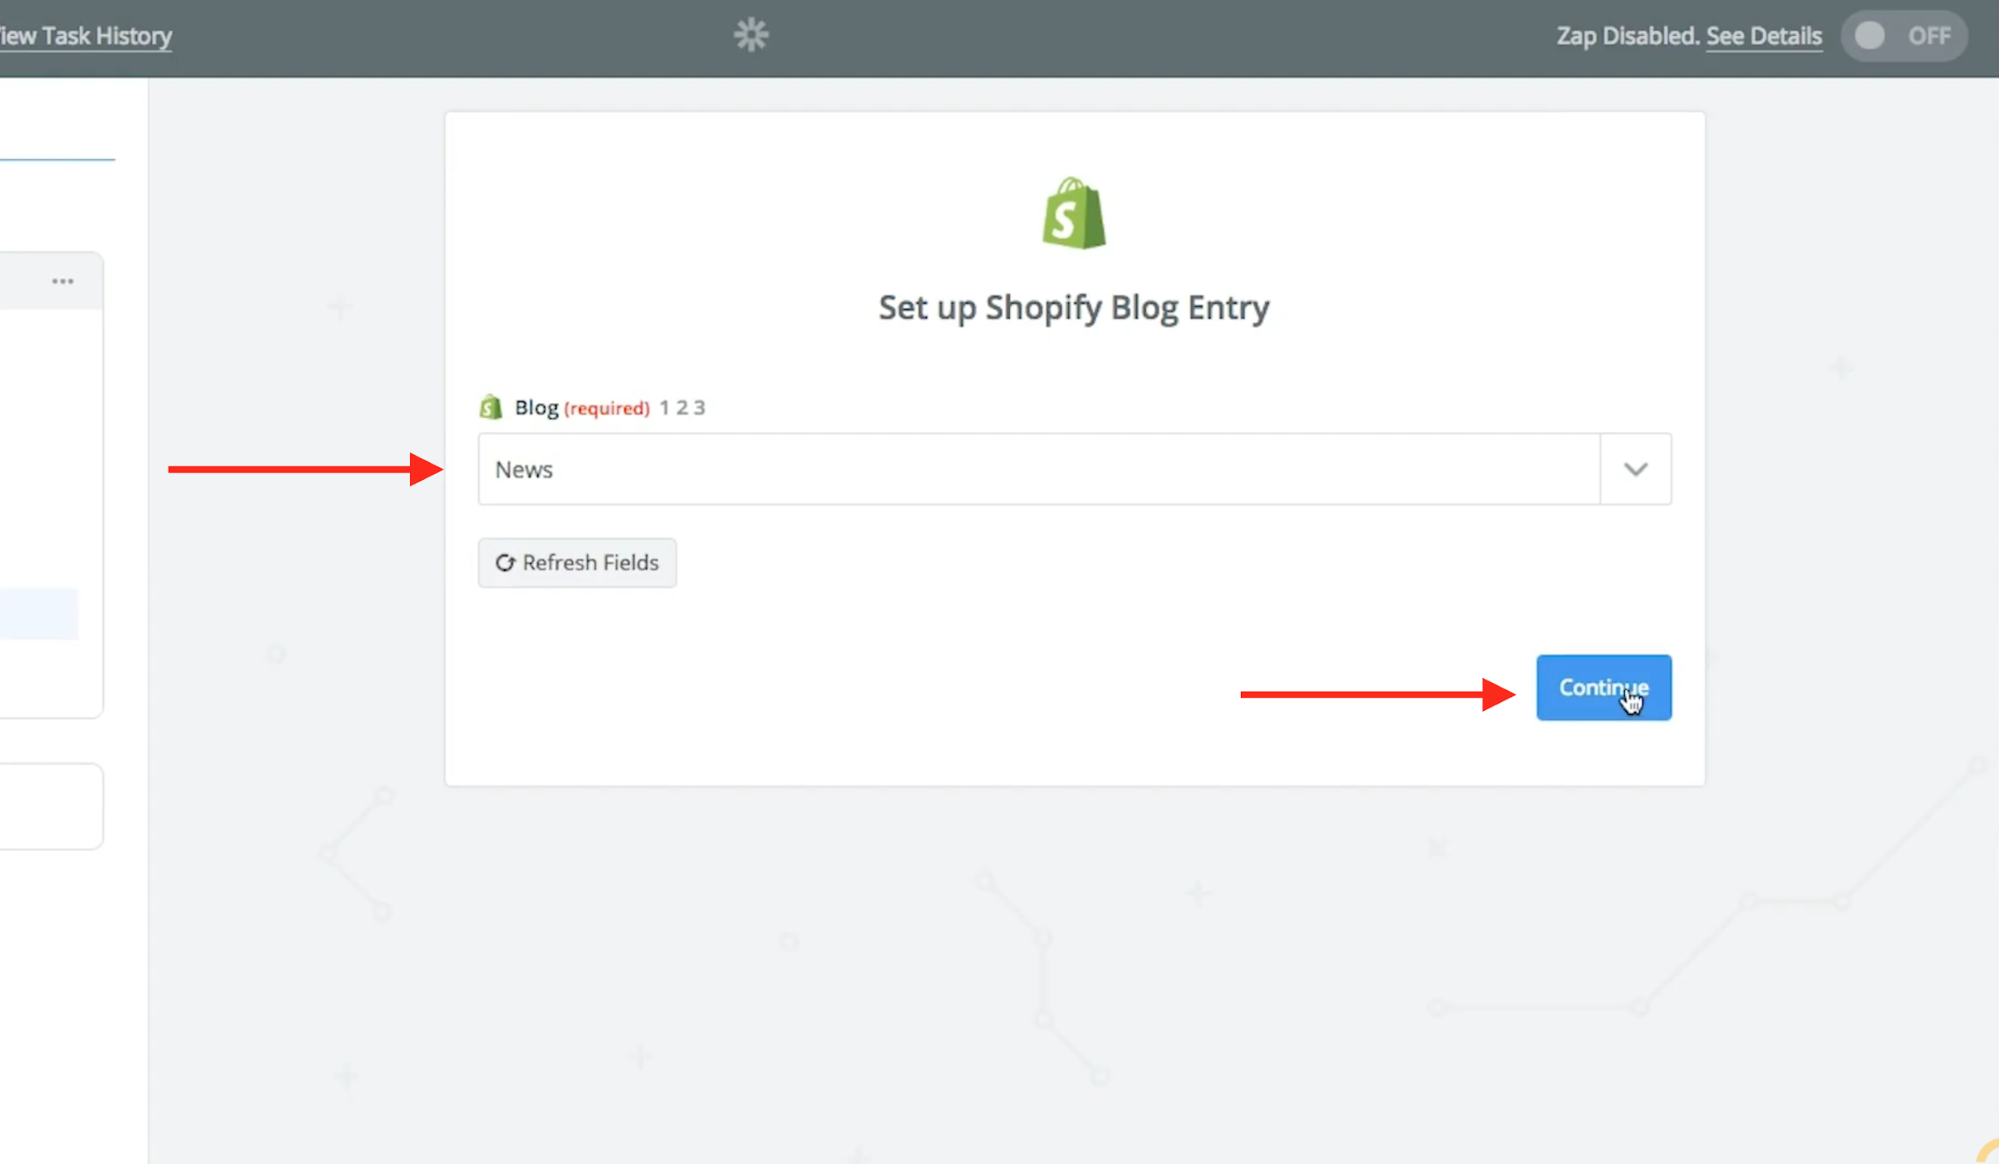 User selects the Shopify blog they want to use